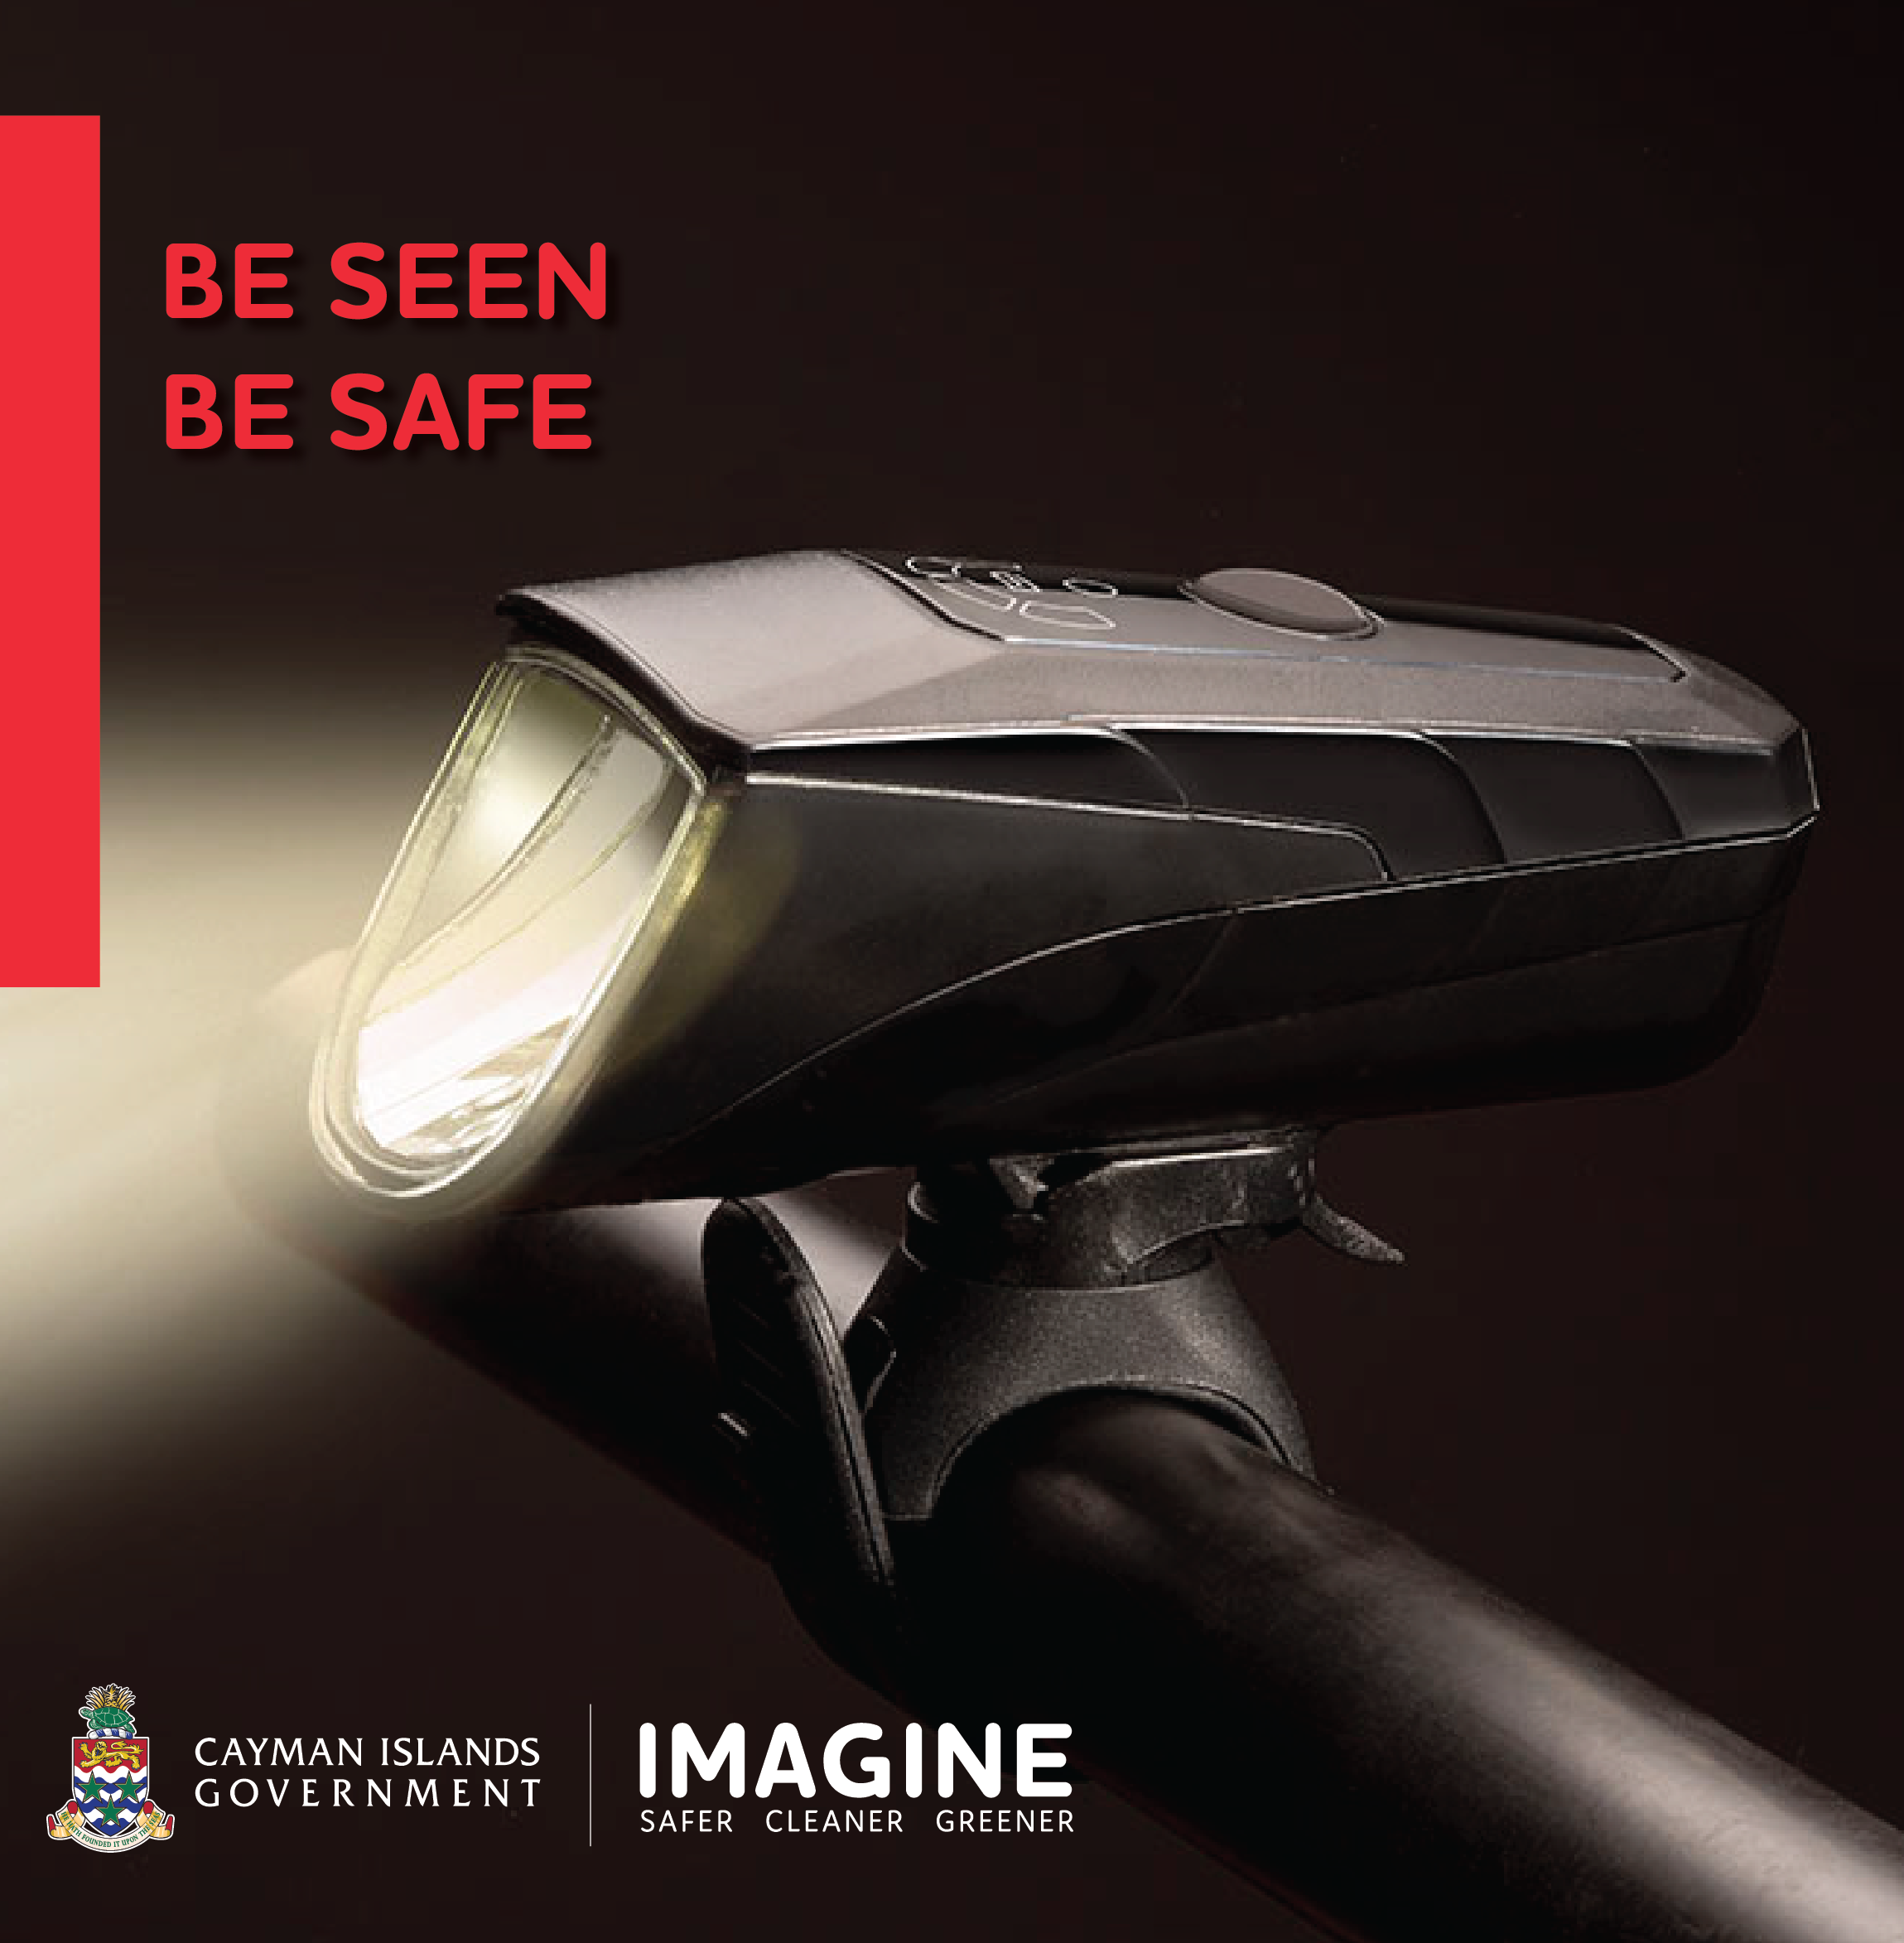 FB Square - BE SEEN BE SAFE (1)